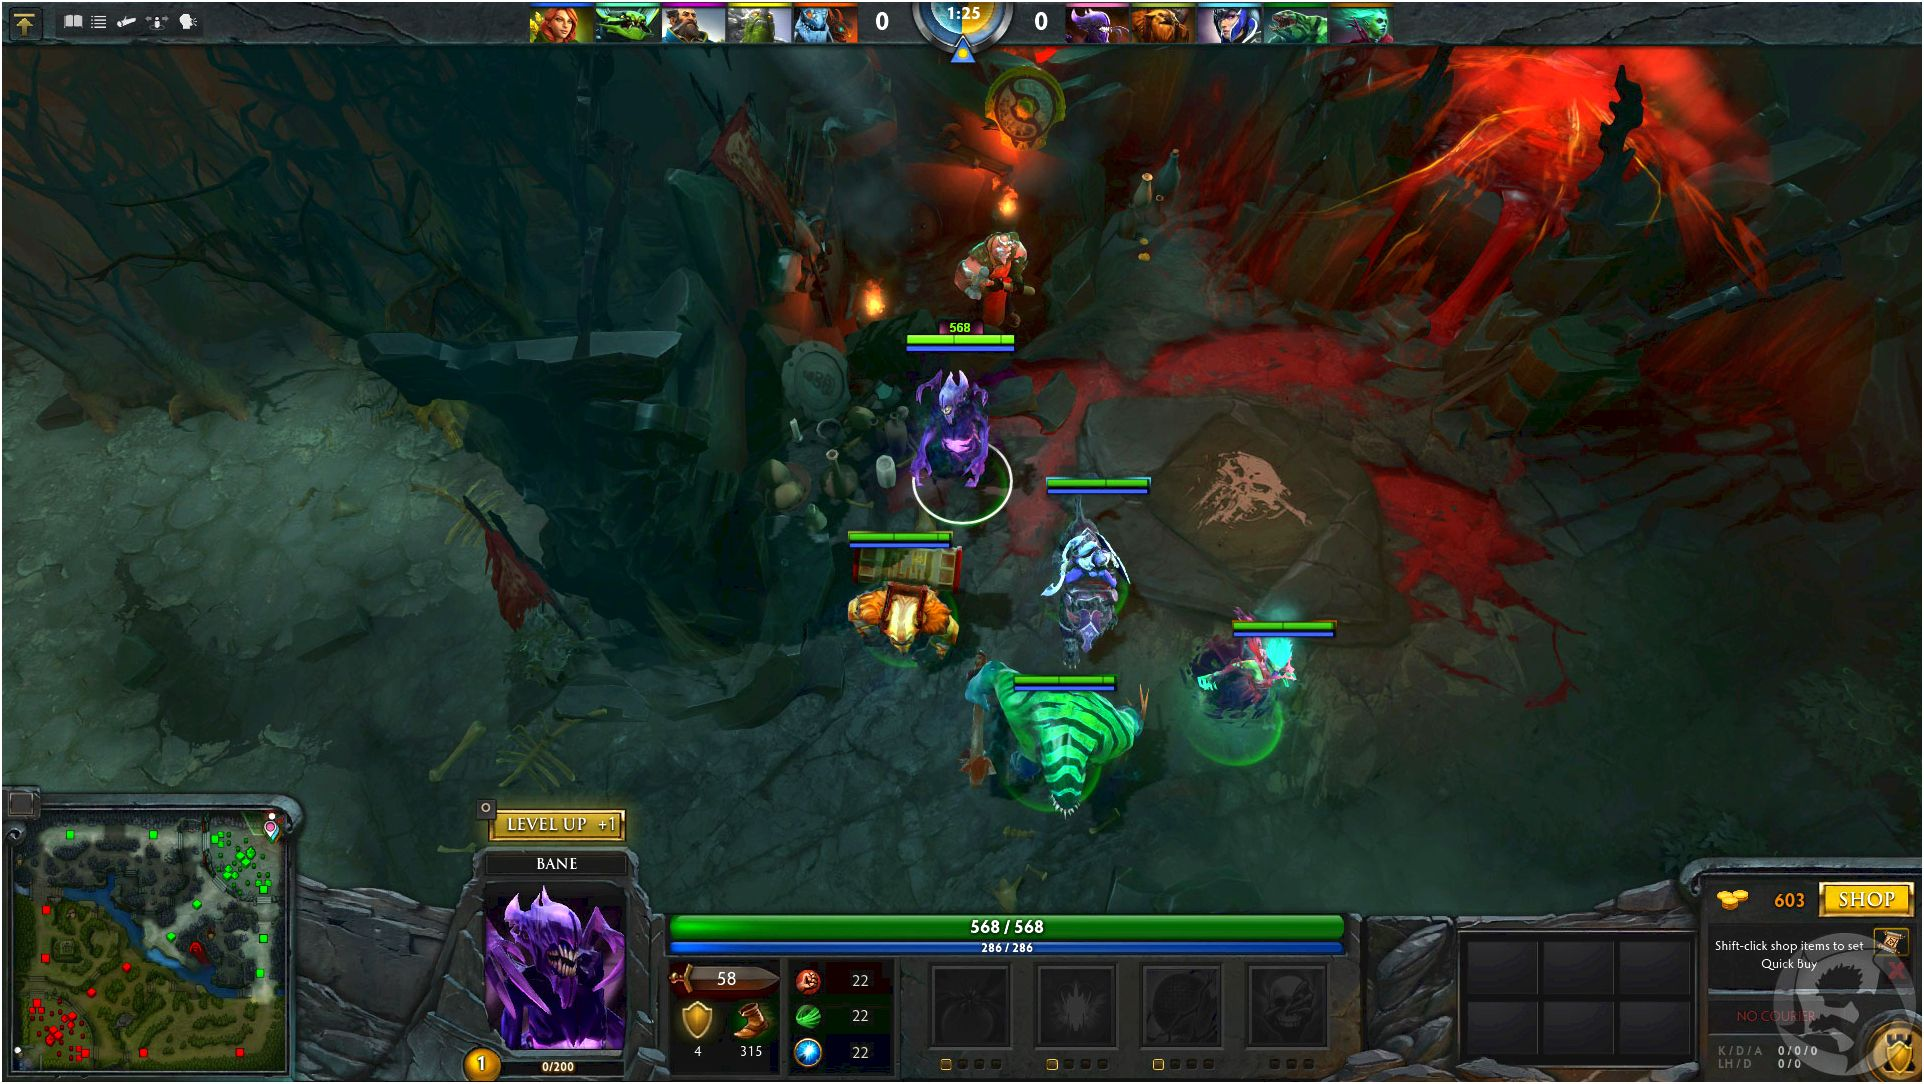 Why not play dota2 any longer? - dota 2 forum for pc - page 3 - gamefaqs cash cow now, but